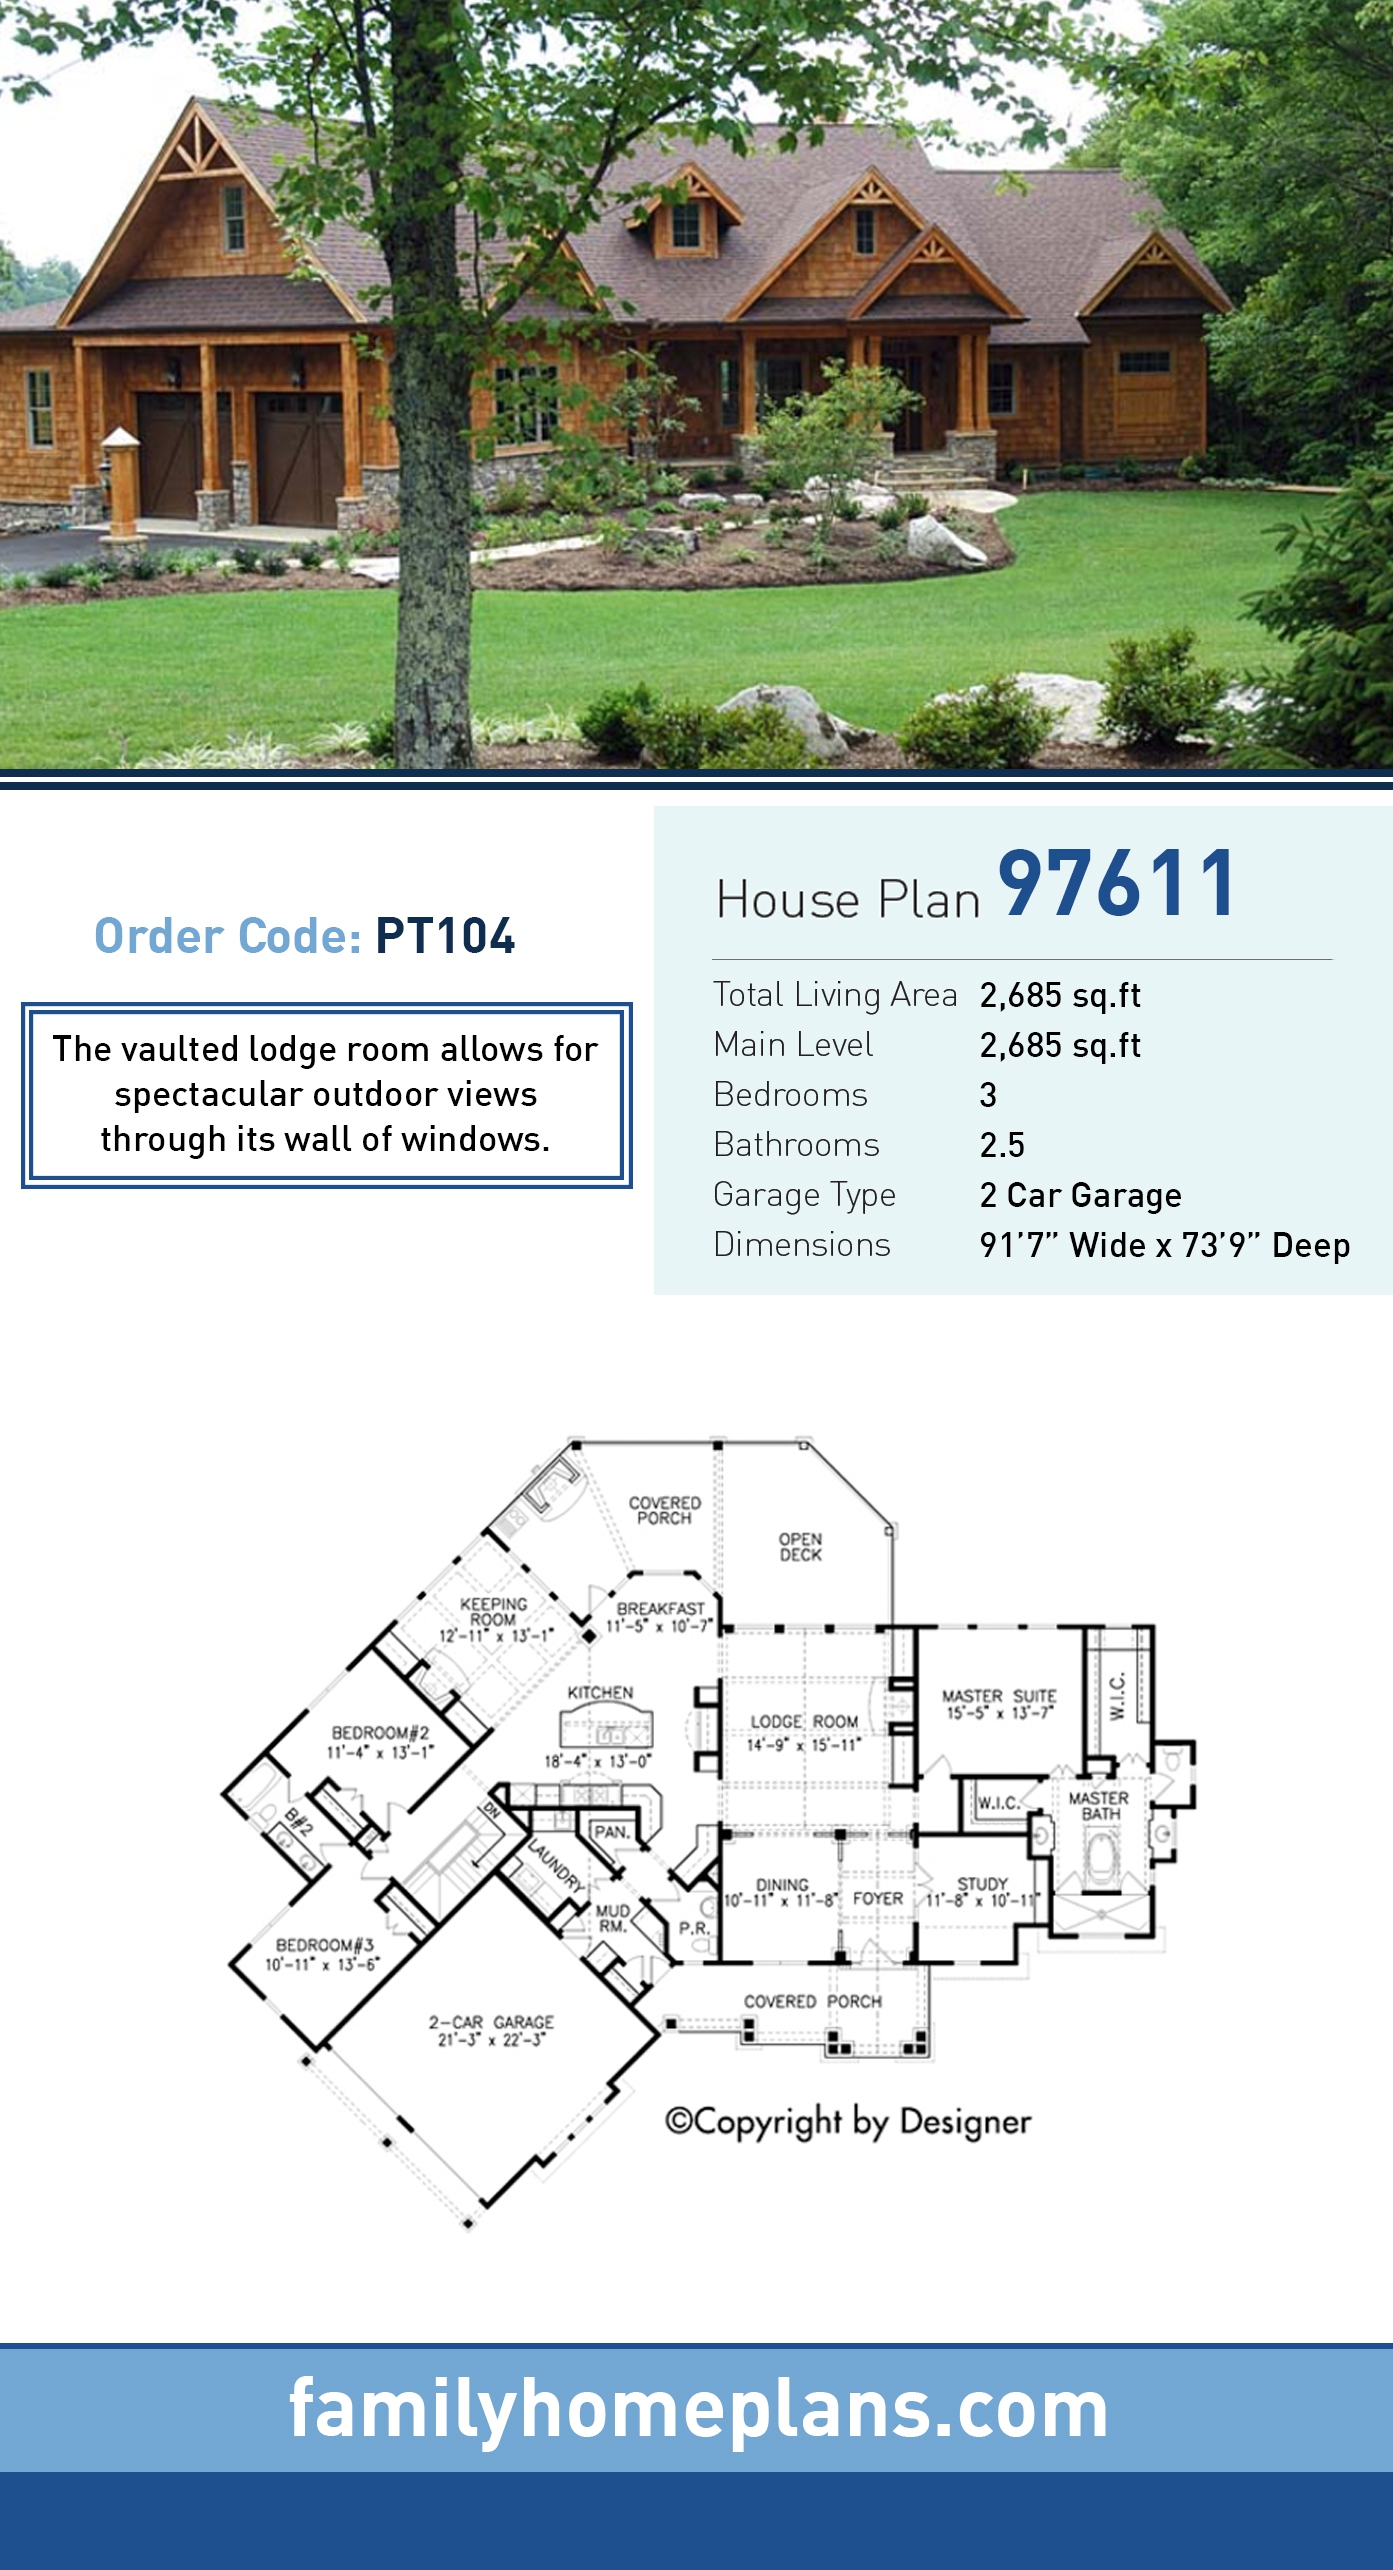 Cottage, Country, Craftsman, Southern, Traditional House Plan 97611 with 3 Beds, 3 Baths, 2 Car Garage